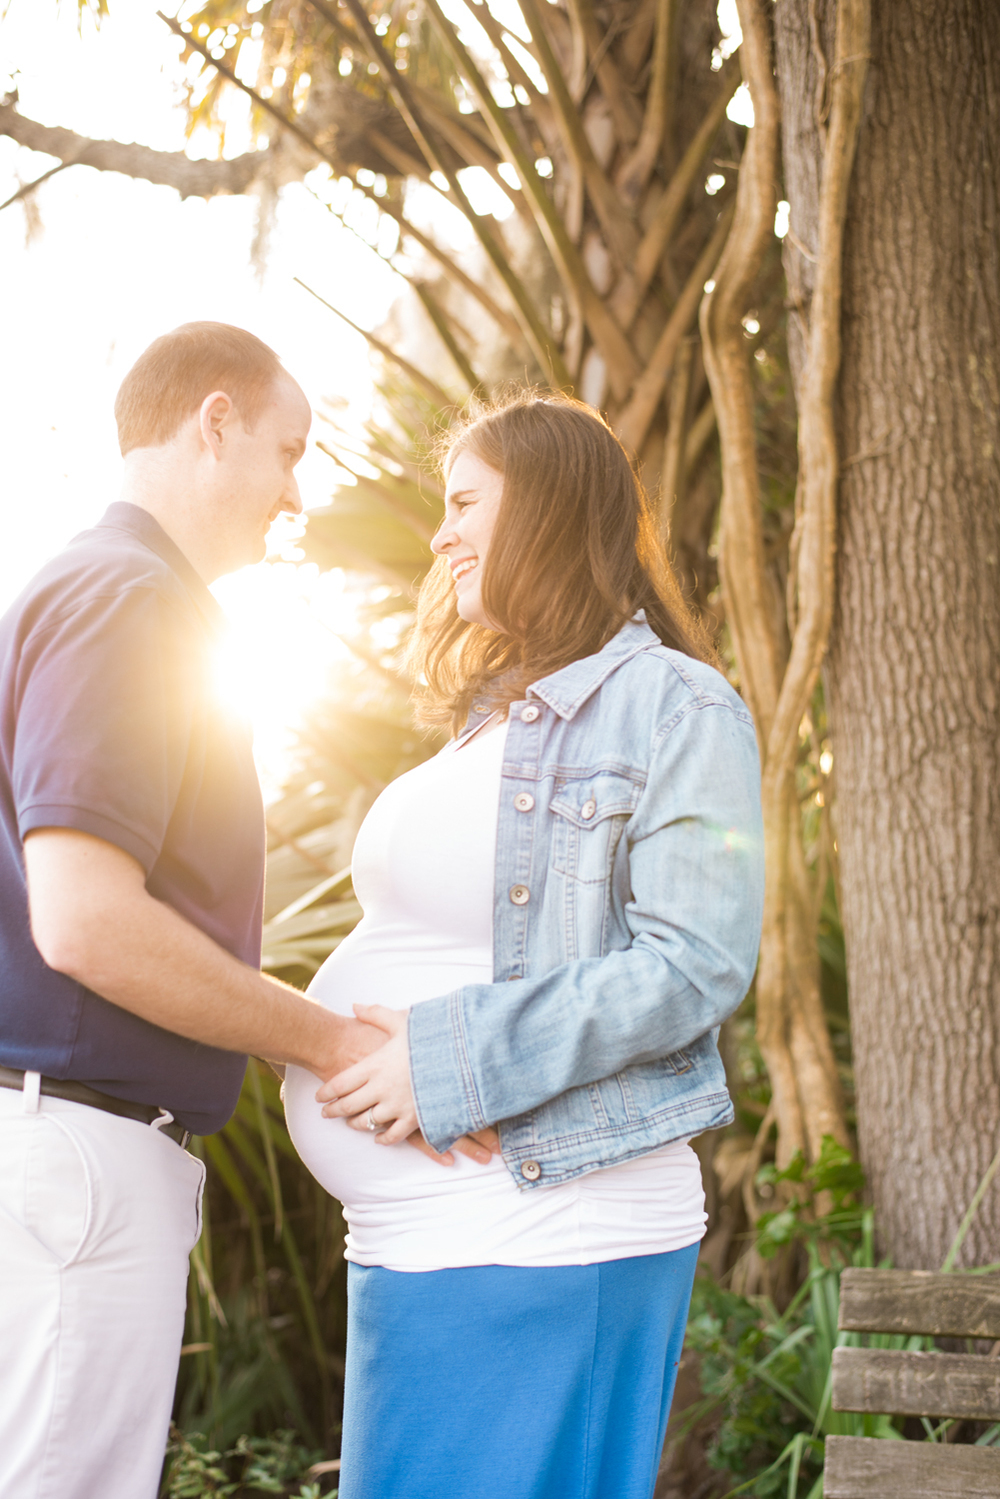 Bicester couple embrace mum's pregnant belly during sunset.